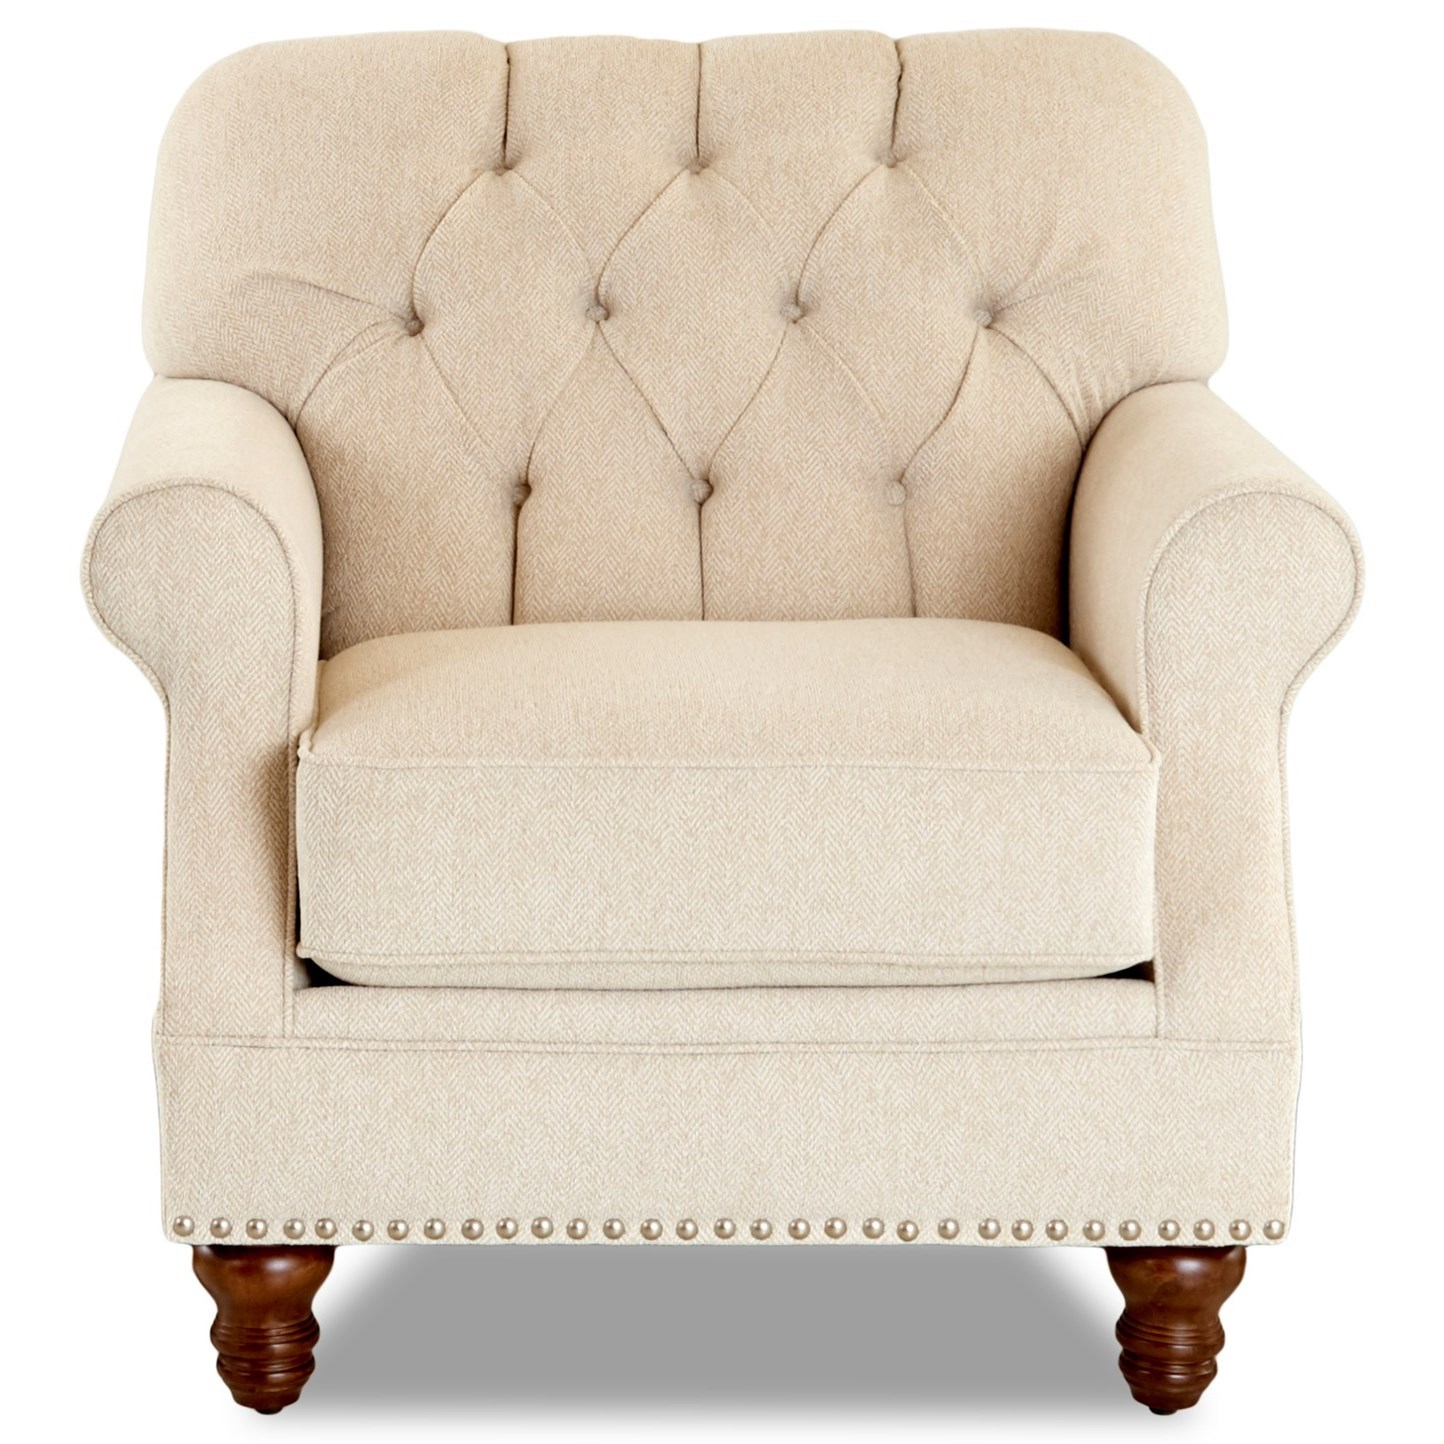 Burbank Chair w/ Nailheads by Klaussner at Johnny Janosik